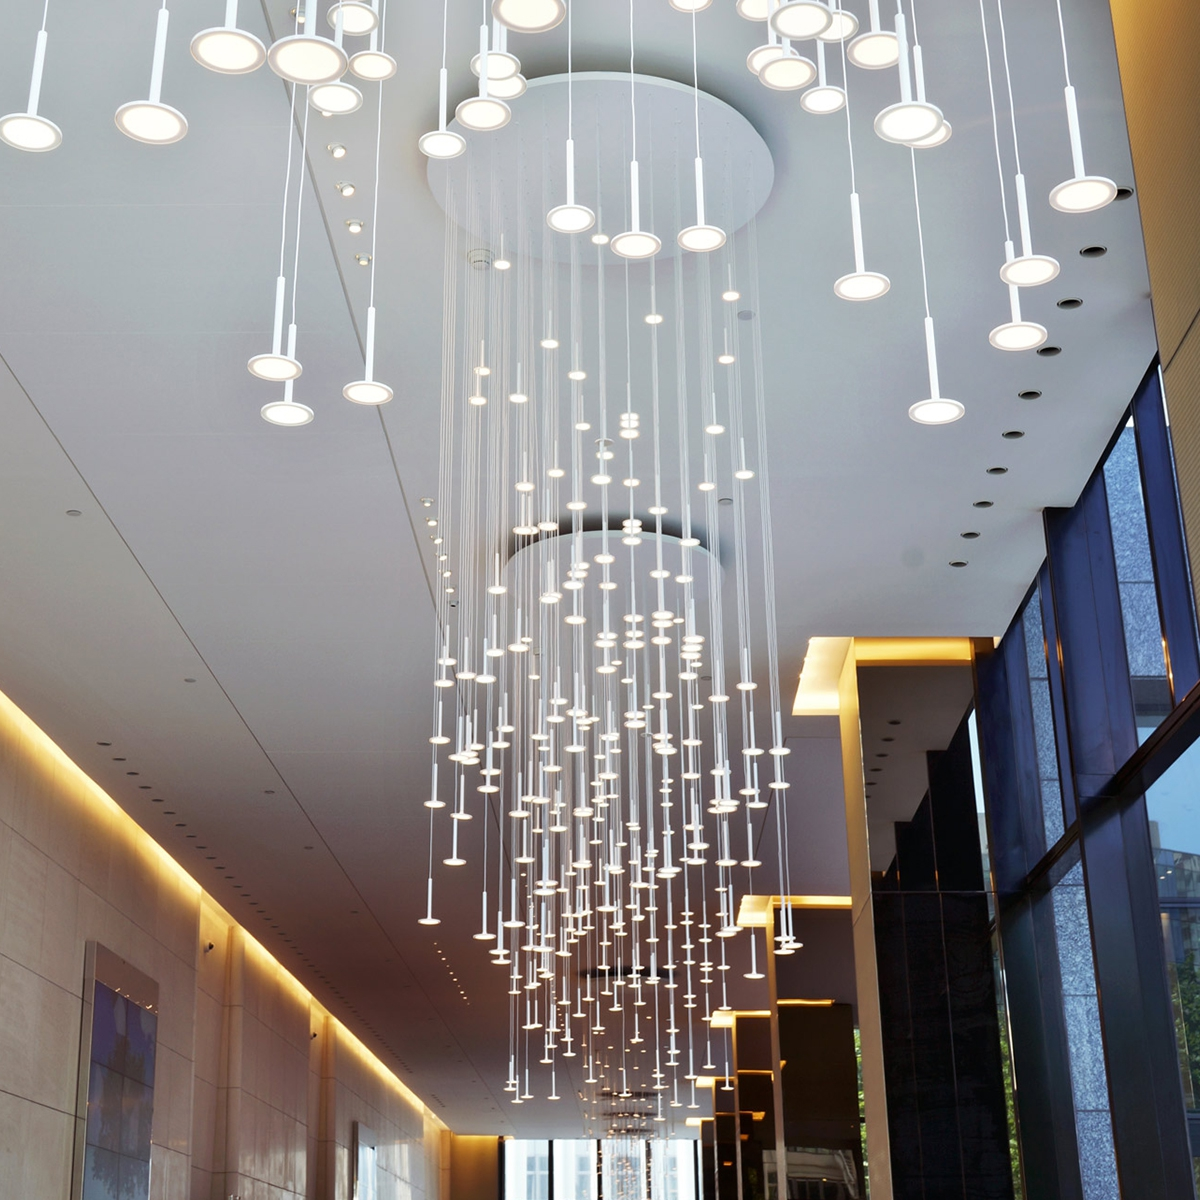 ... IRAIN 137 Shower of Light Pendant L& with 137 OLEDs by BlackBody & I.RAIN 137 Shower of Light Pendant Lamp with 137 OLED Lights azcodes.com